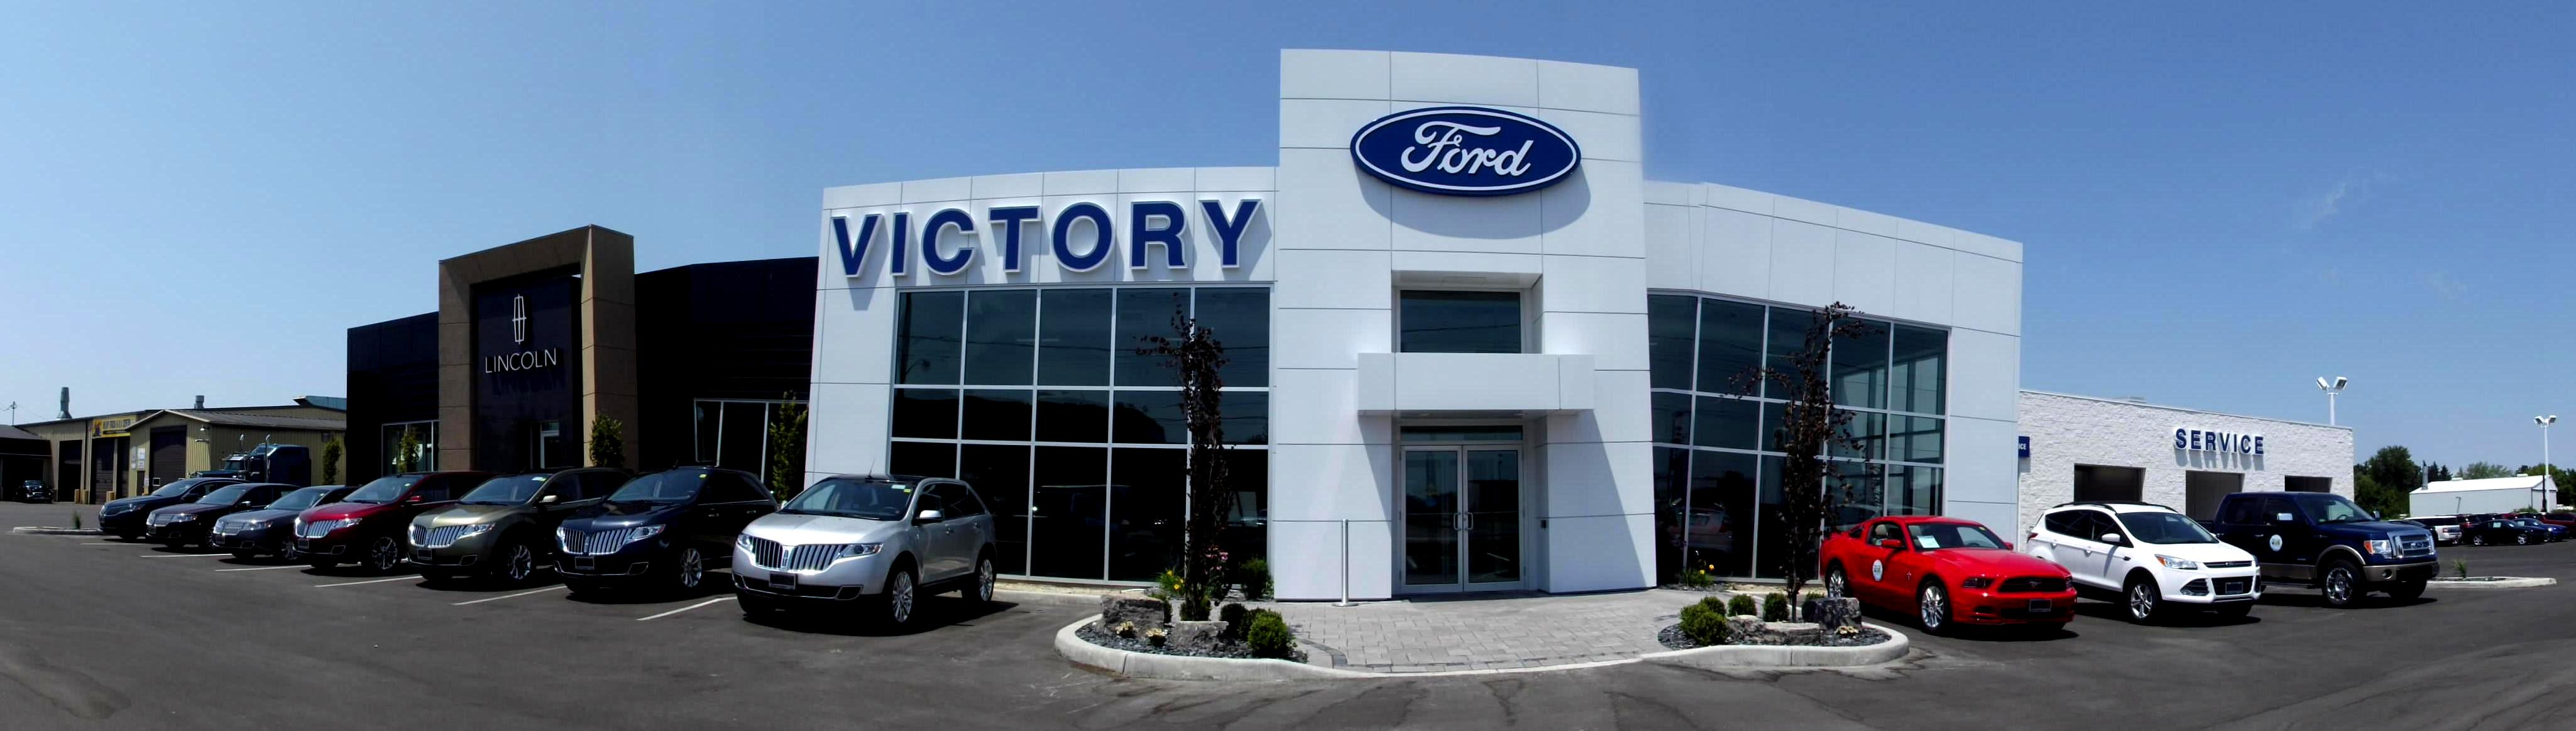 Victory Ford dealership building